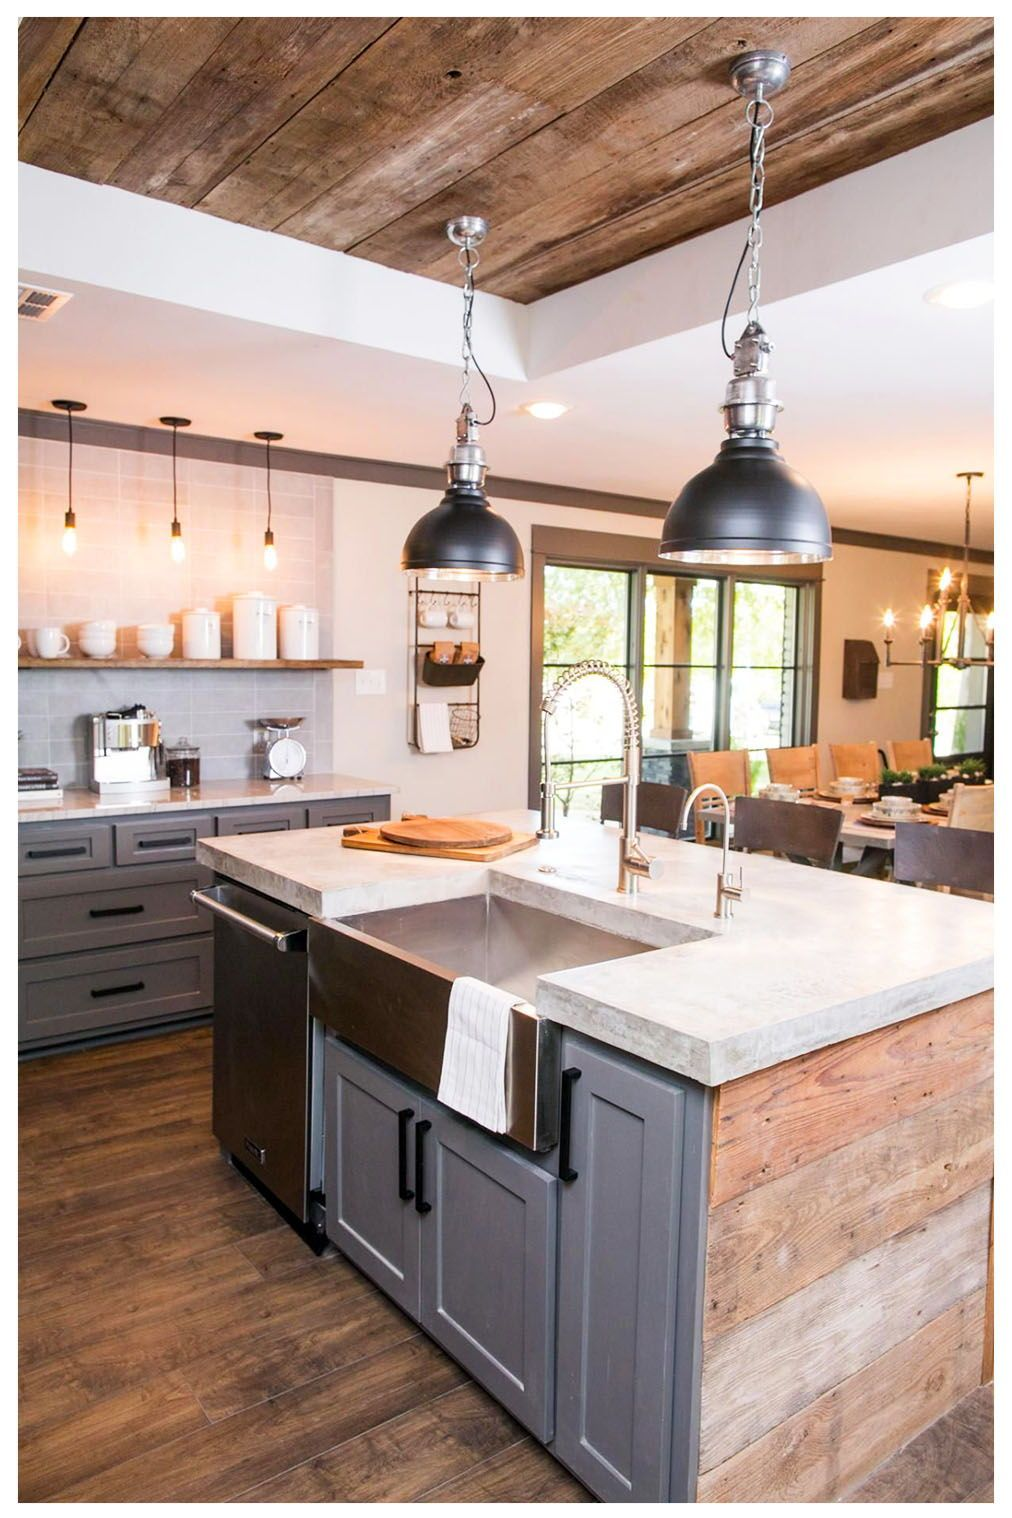 20 Inspiring Traditional Kitchen Design Ideas How To Element Design In 2020 Farmhouse Kitchen Design Farmhouse Style Kitchen Rustic Farmhouse Kitchen